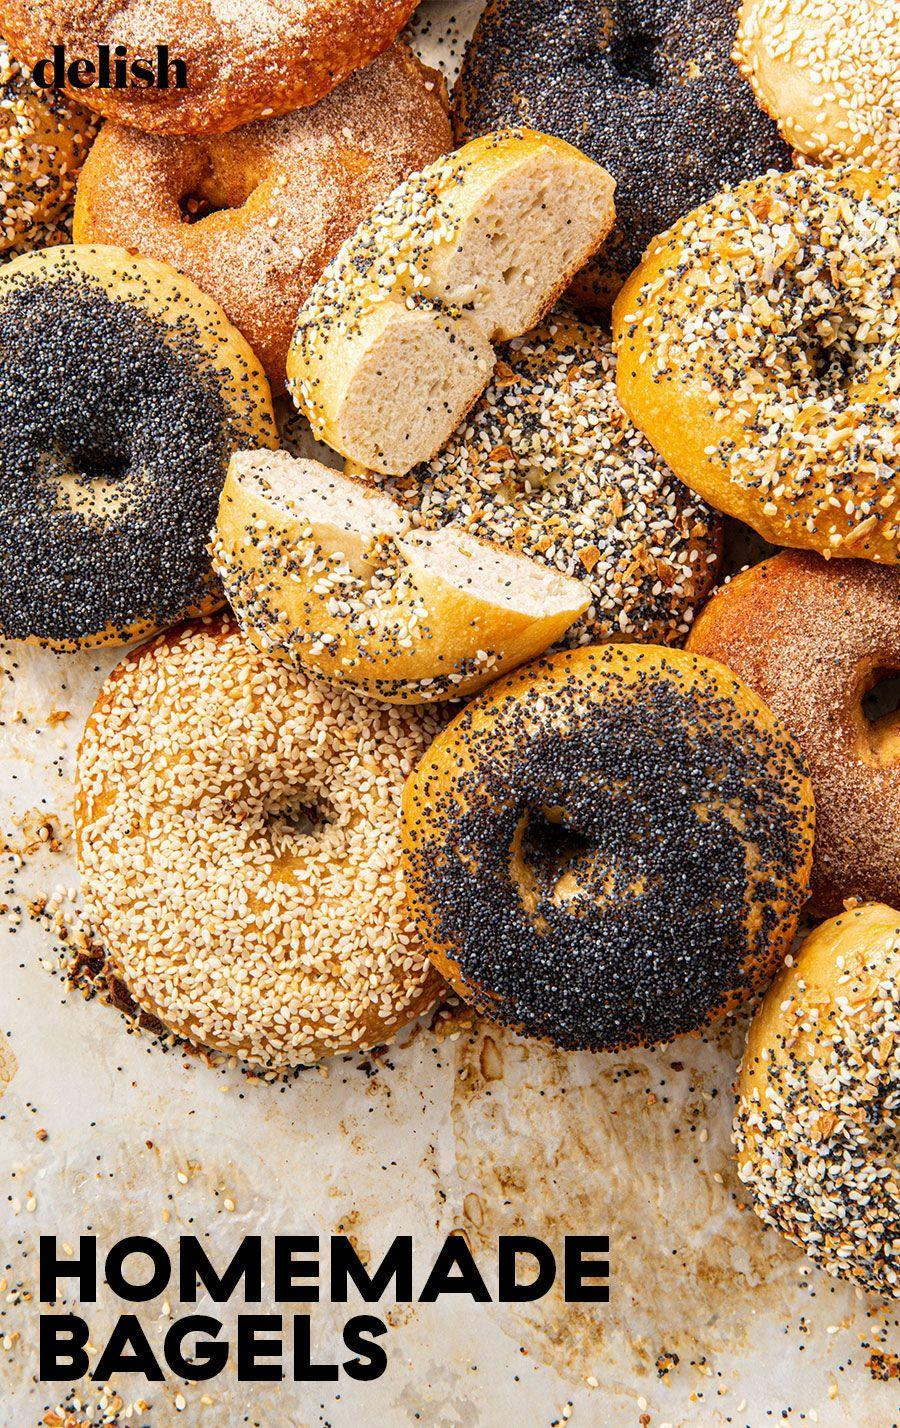 """<p>Made with love and lots of toppings.</p><p>Get the recipe from <a href=""""https://www.delish.com/cooking/recipe-ideas/a30324798/homemade-bagel-recipe/"""" rel=""""nofollow noopener"""" target=""""_blank"""" data-ylk=""""slk:Delish"""" class=""""link rapid-noclick-resp"""">Delish</a>.</p>"""